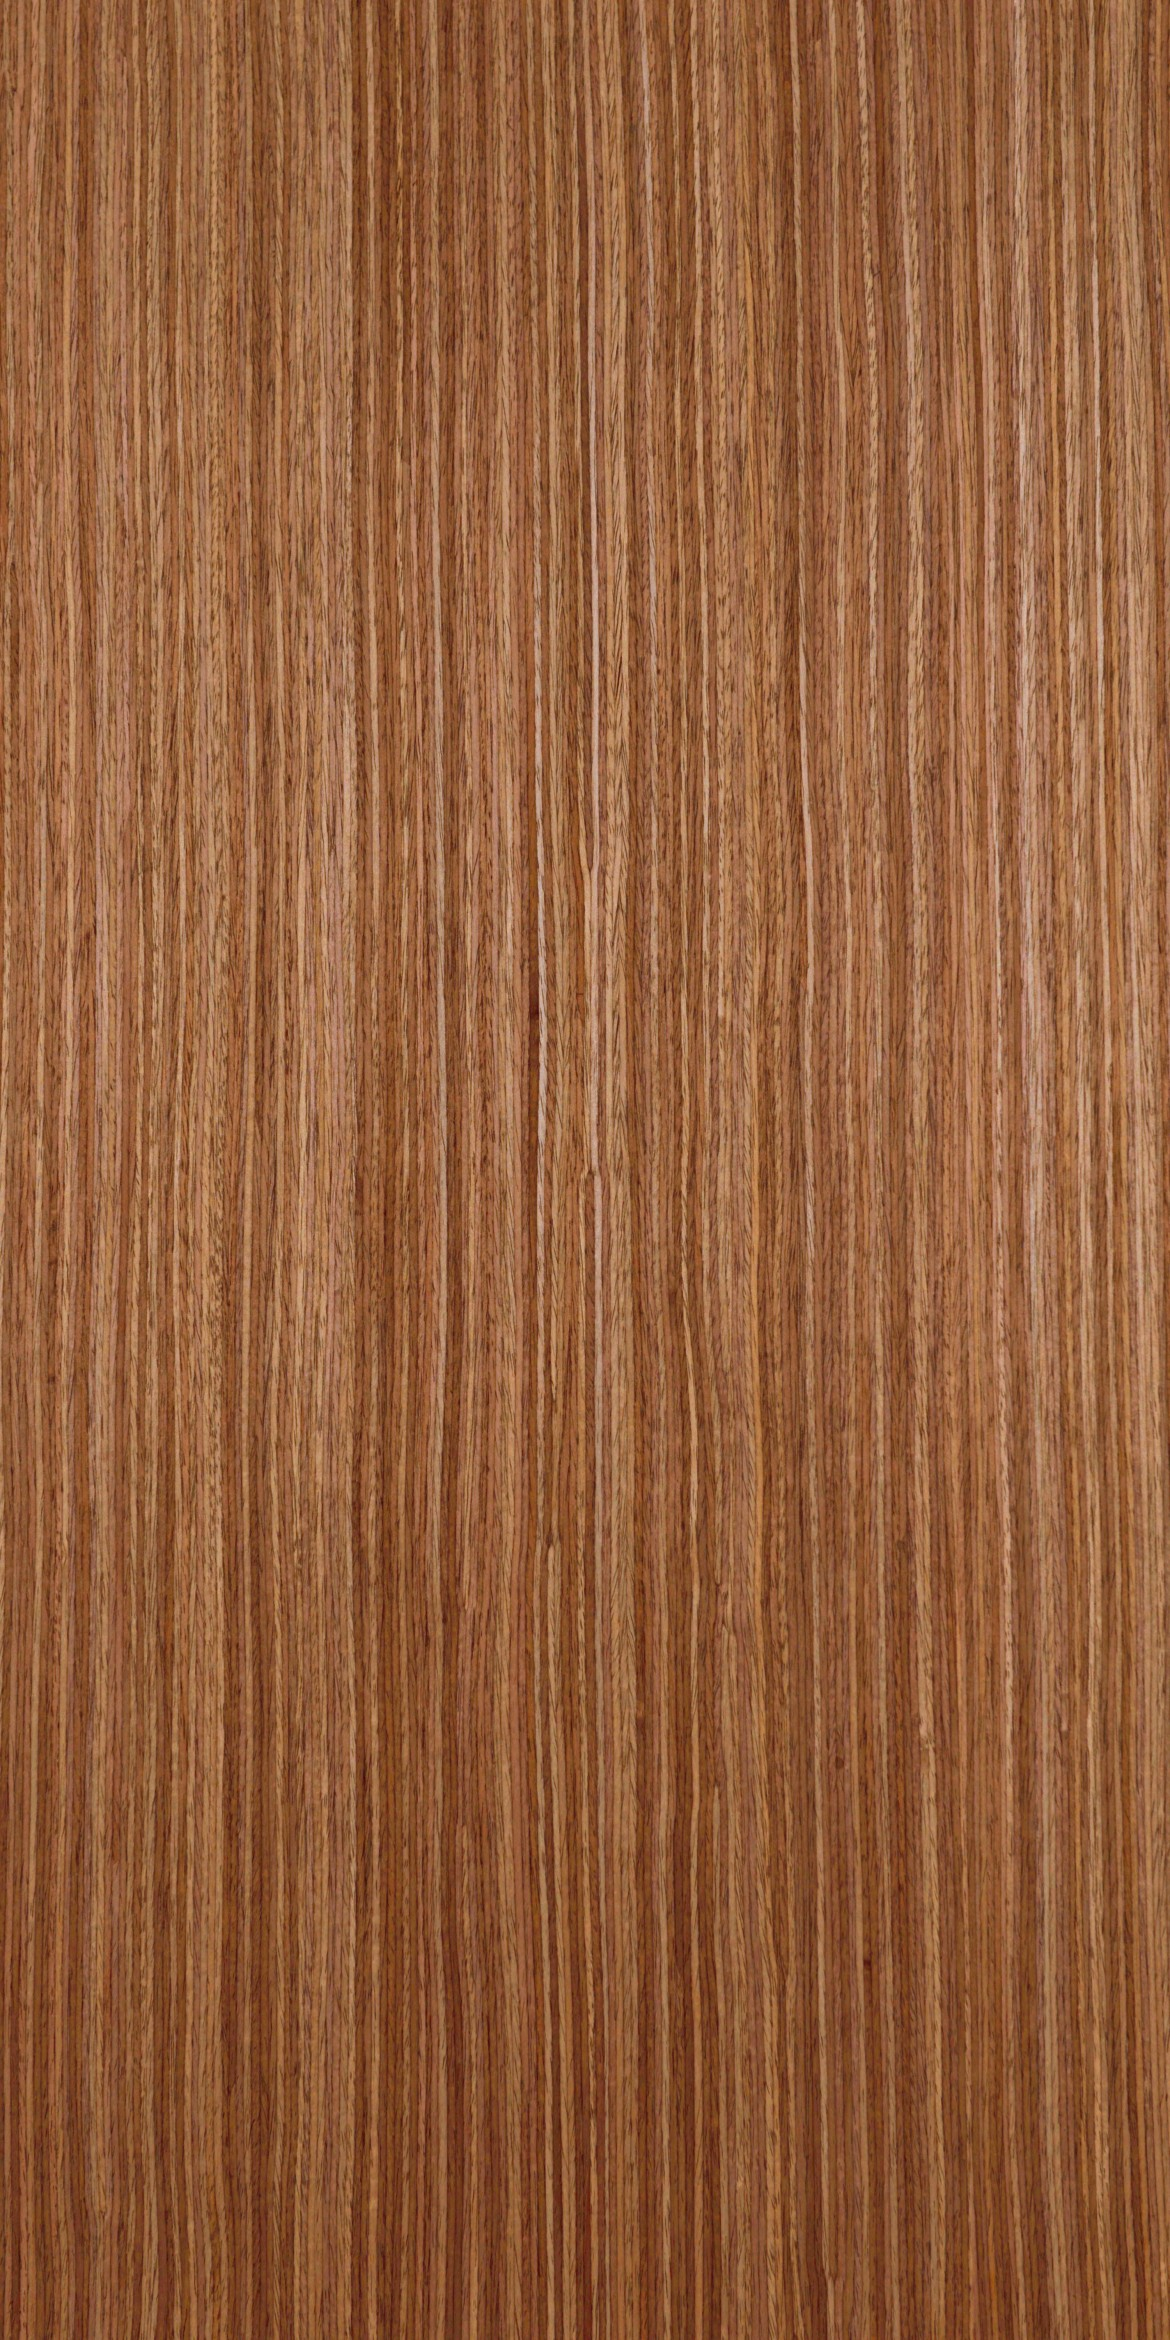 Recon walnut veneer plywood billiona enterprise